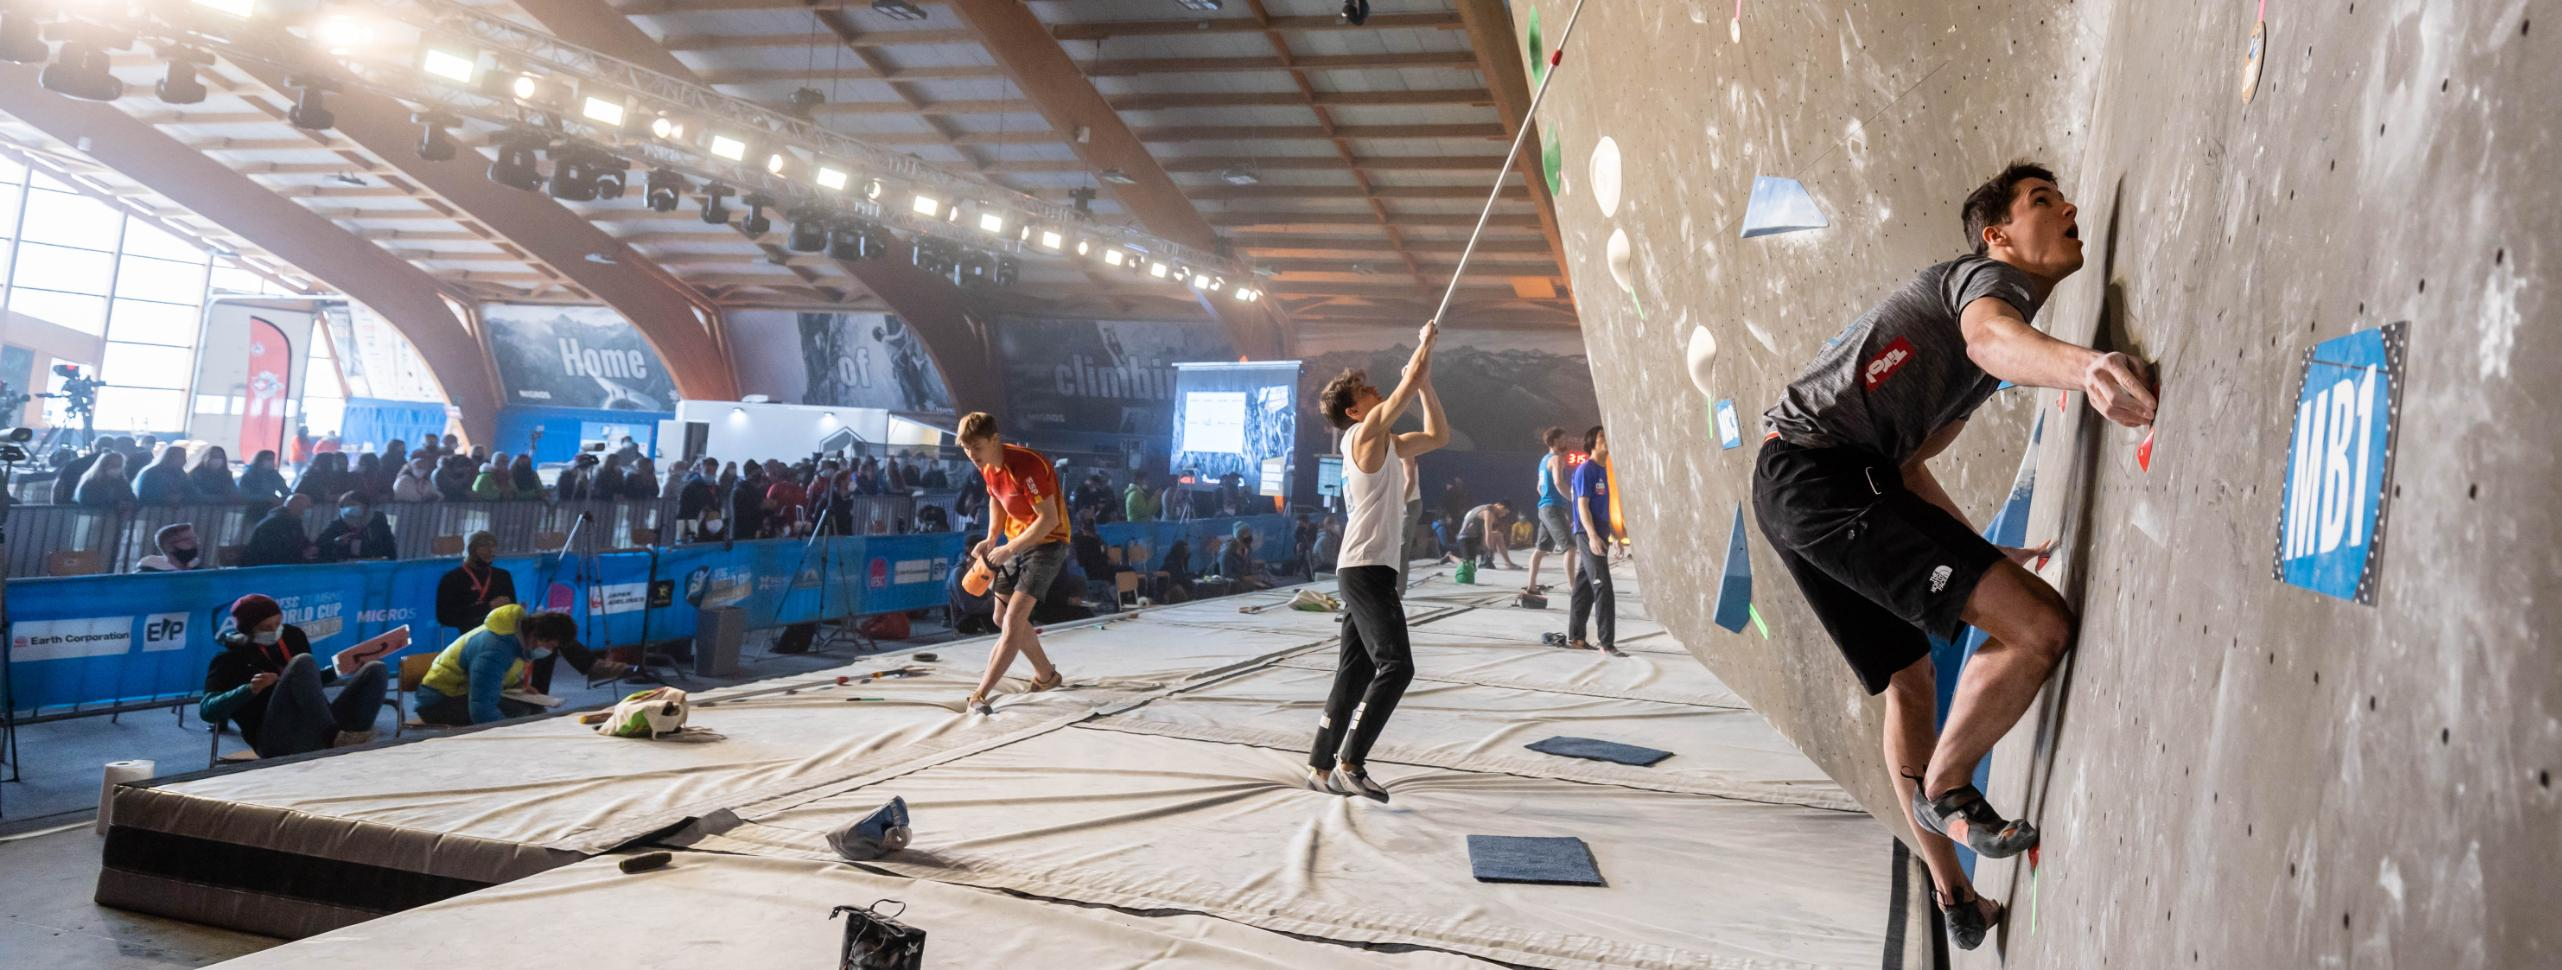 BOULDER IS BACK! THE IFSC WORLD CUP IN MEIRINGEN KICKS OFF TOMORROW